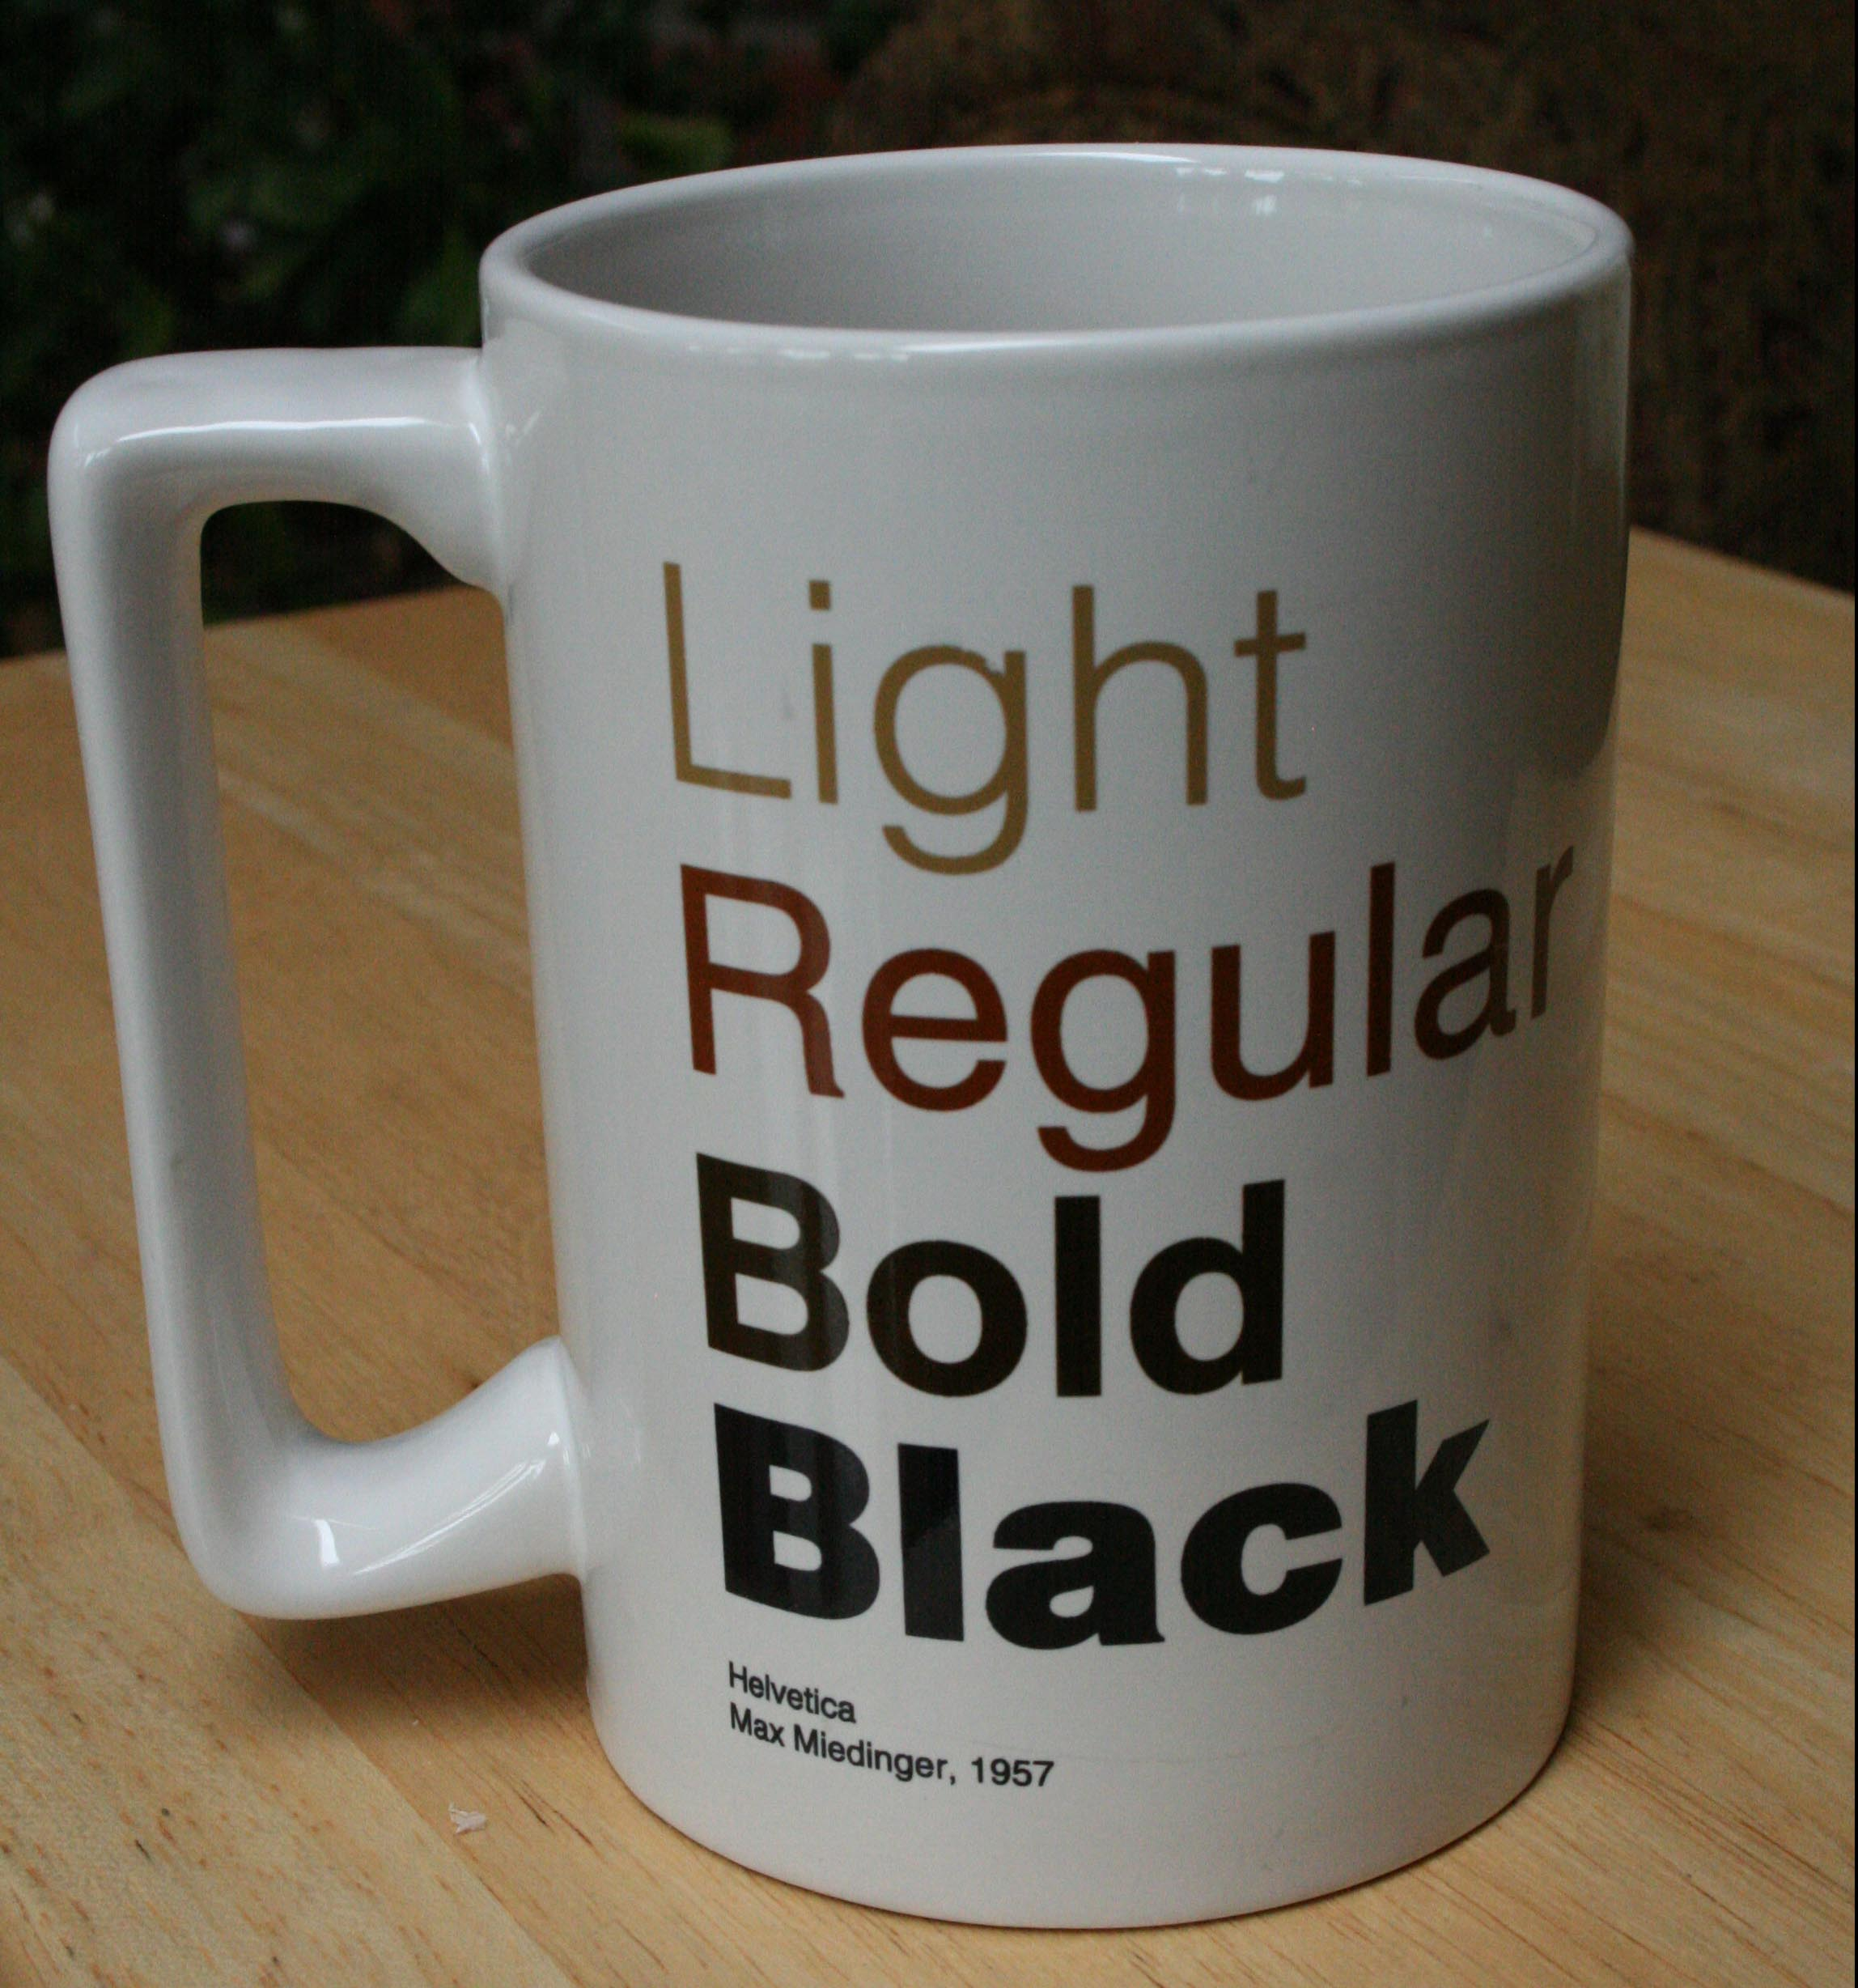 the lovely Helvetica mug